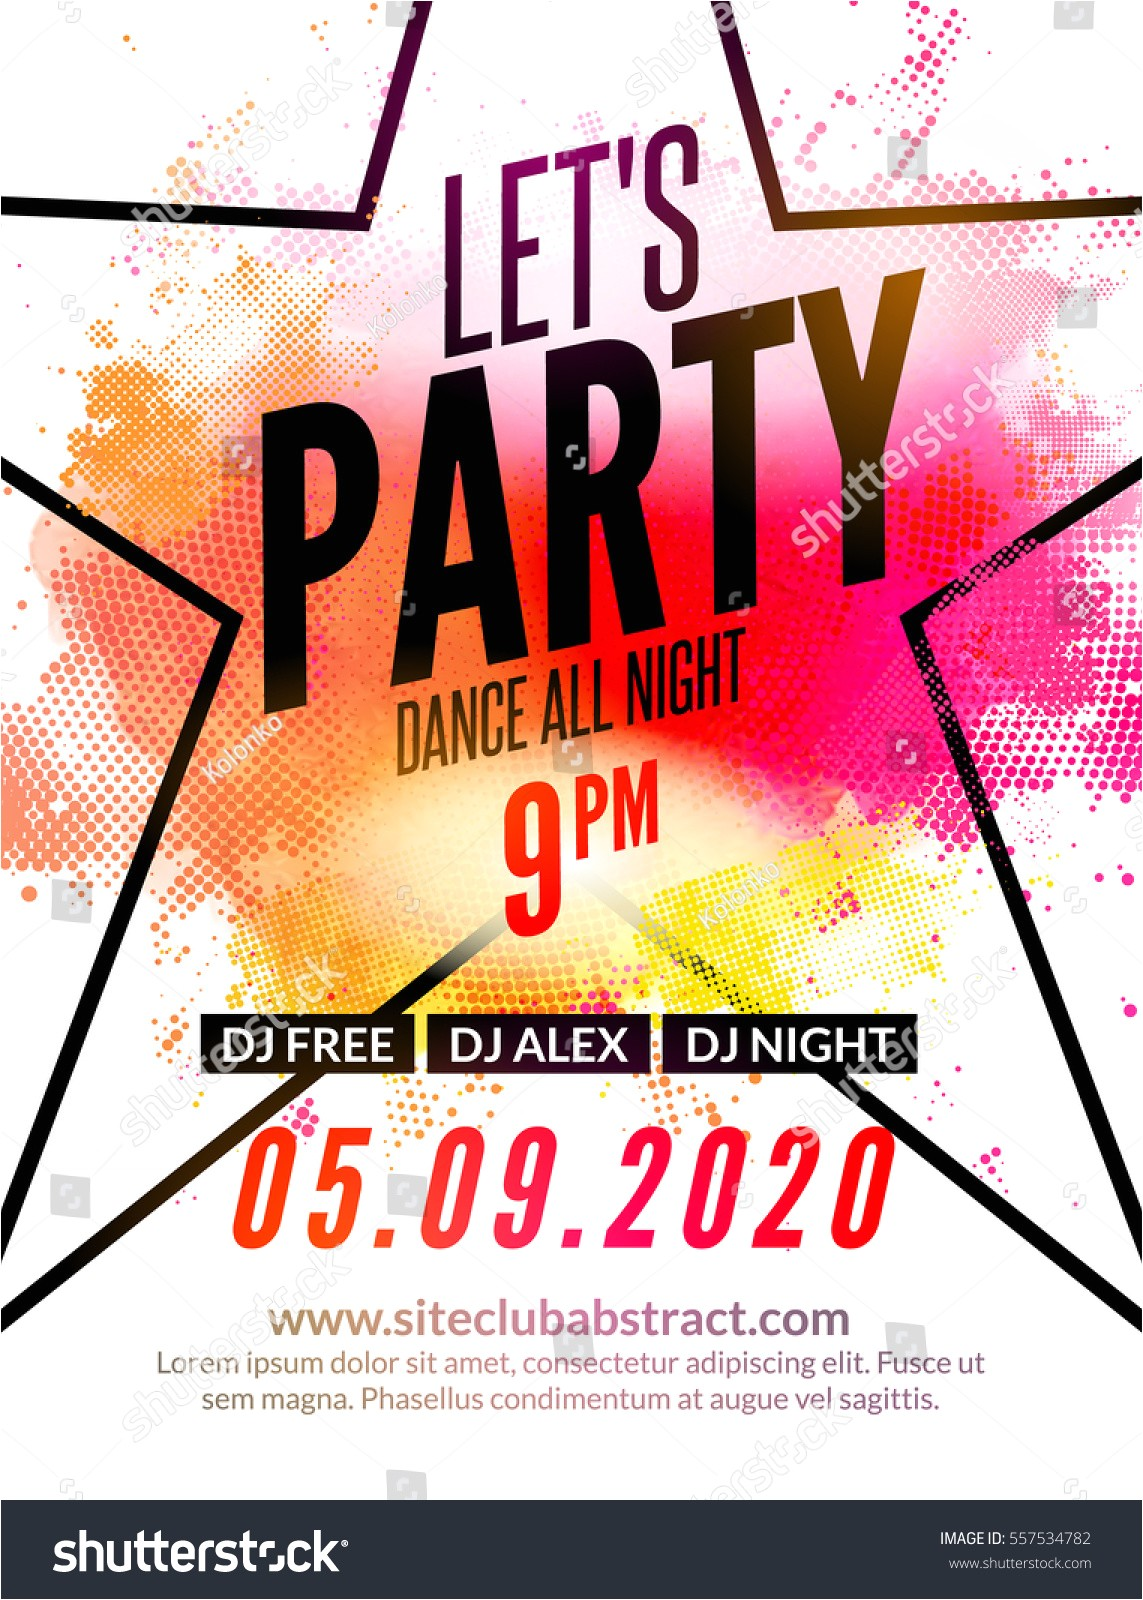 lets party design poster night club